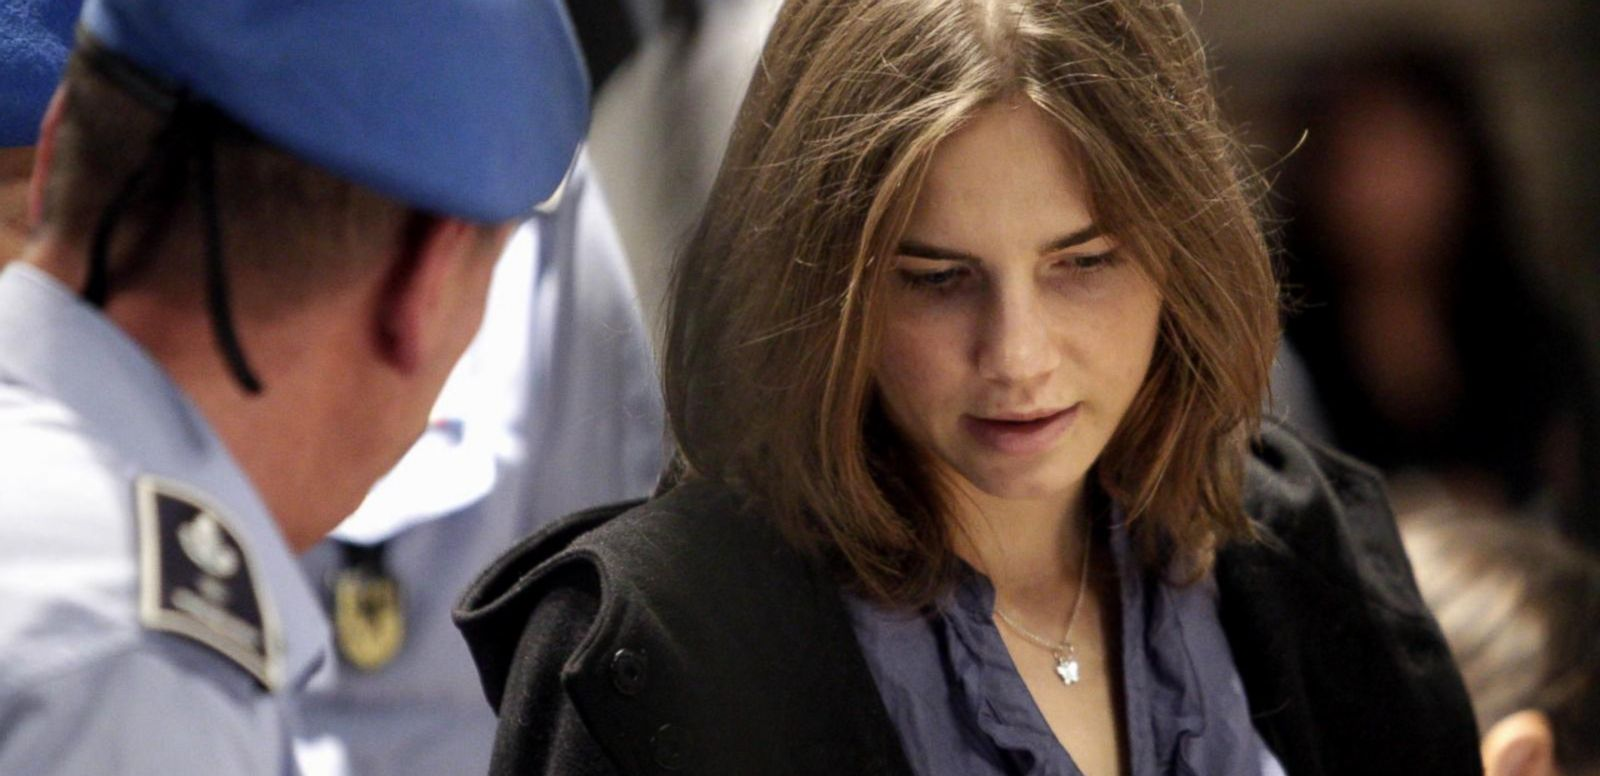 VIDEO: Amanda Knox 'Relieved and Grateful' After Italian Court's Ruling